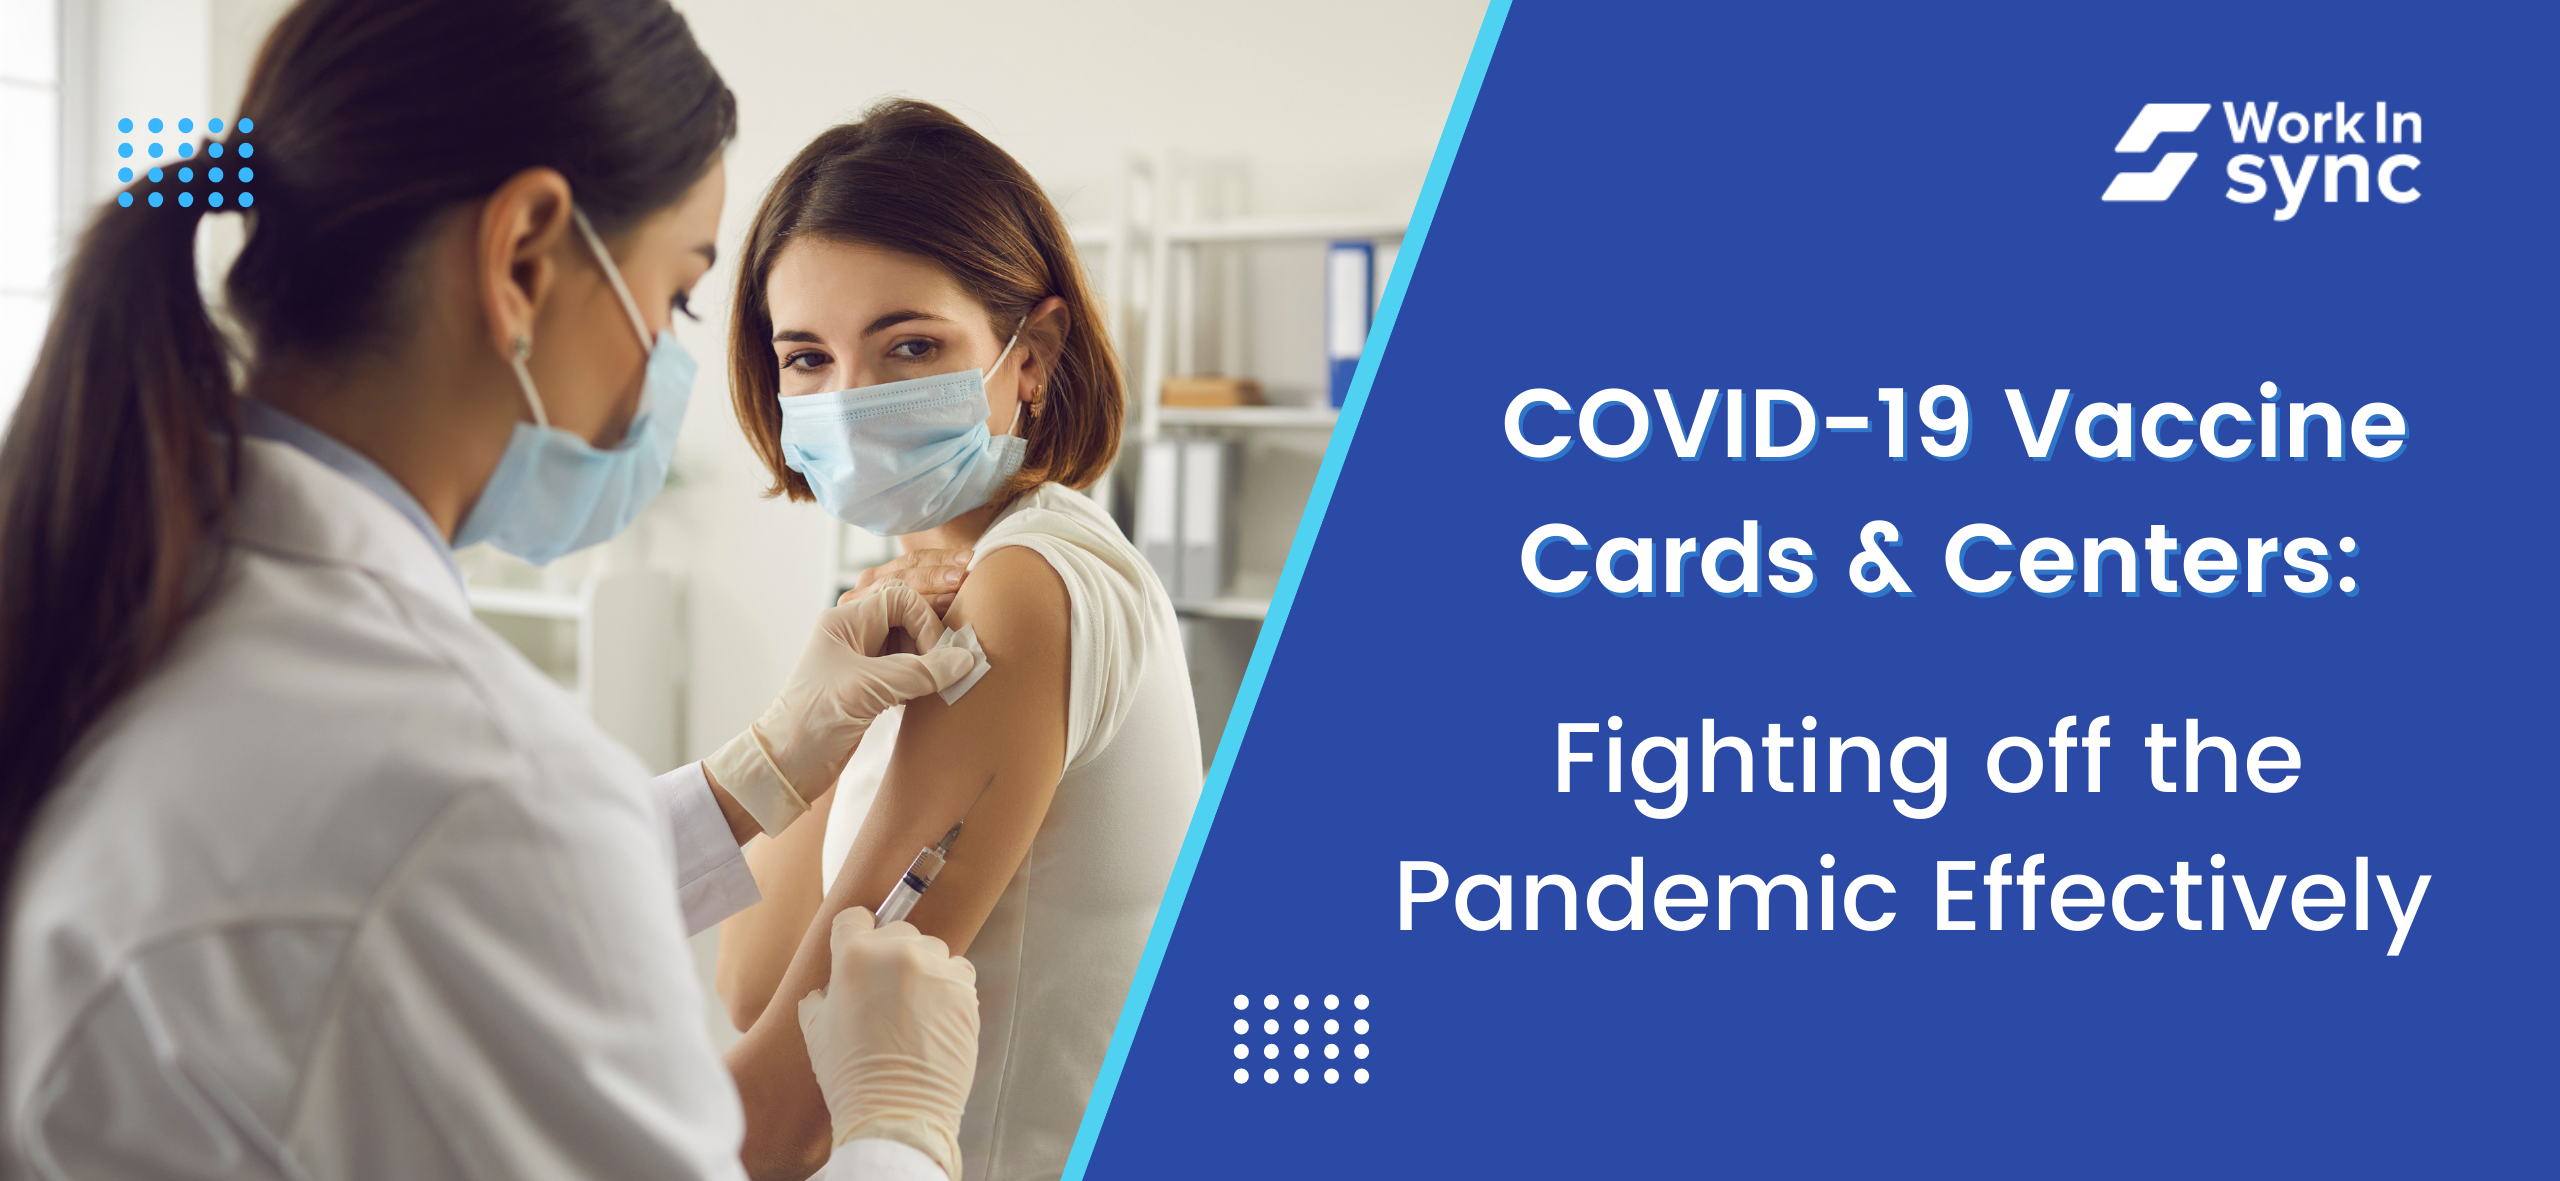 COVID-19 Vaccine Centers: Fighting off the Pandemic